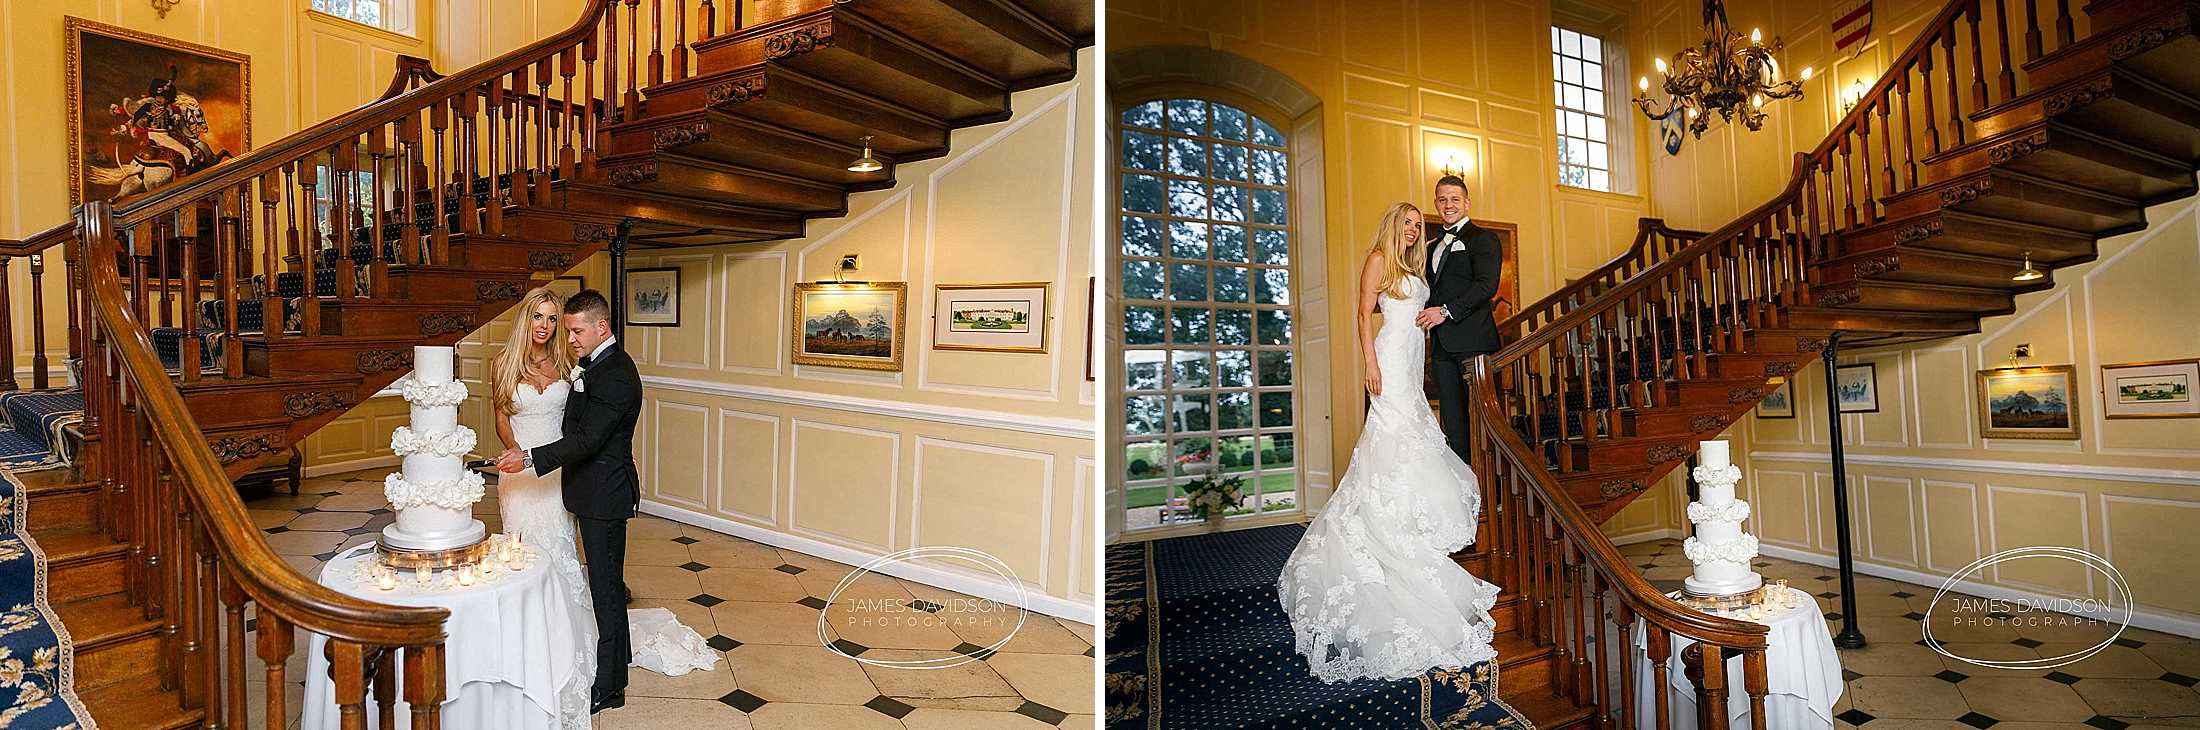 gosfield-hall-wedding-photography-145